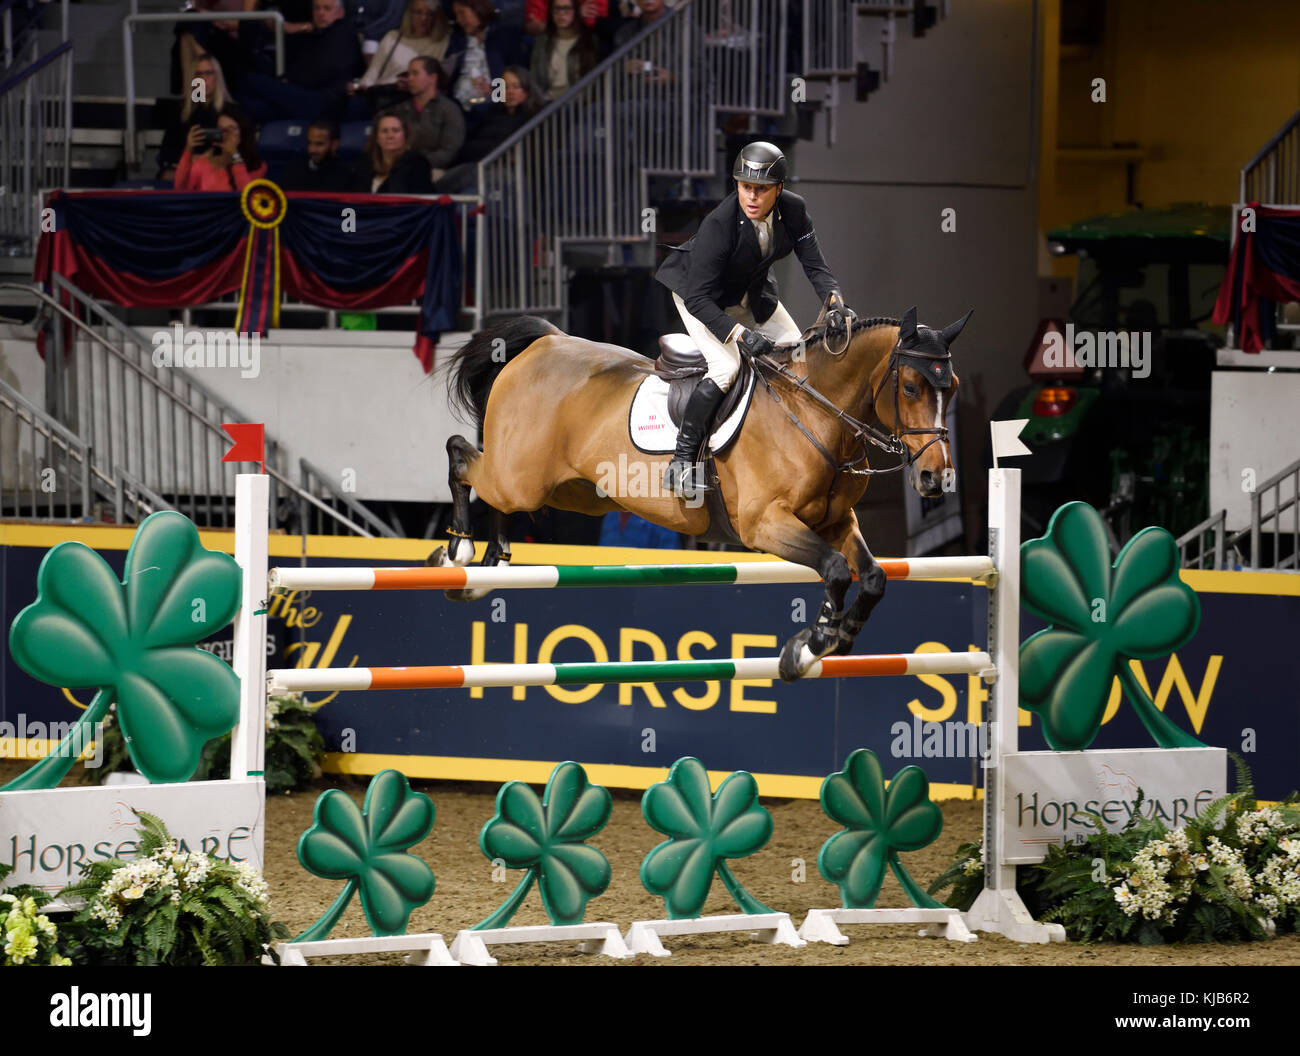 Sharn Wordley New Zealand riding Barnetta to third place in the Longines FEI World Cup Show Jumping competition - Stock Image